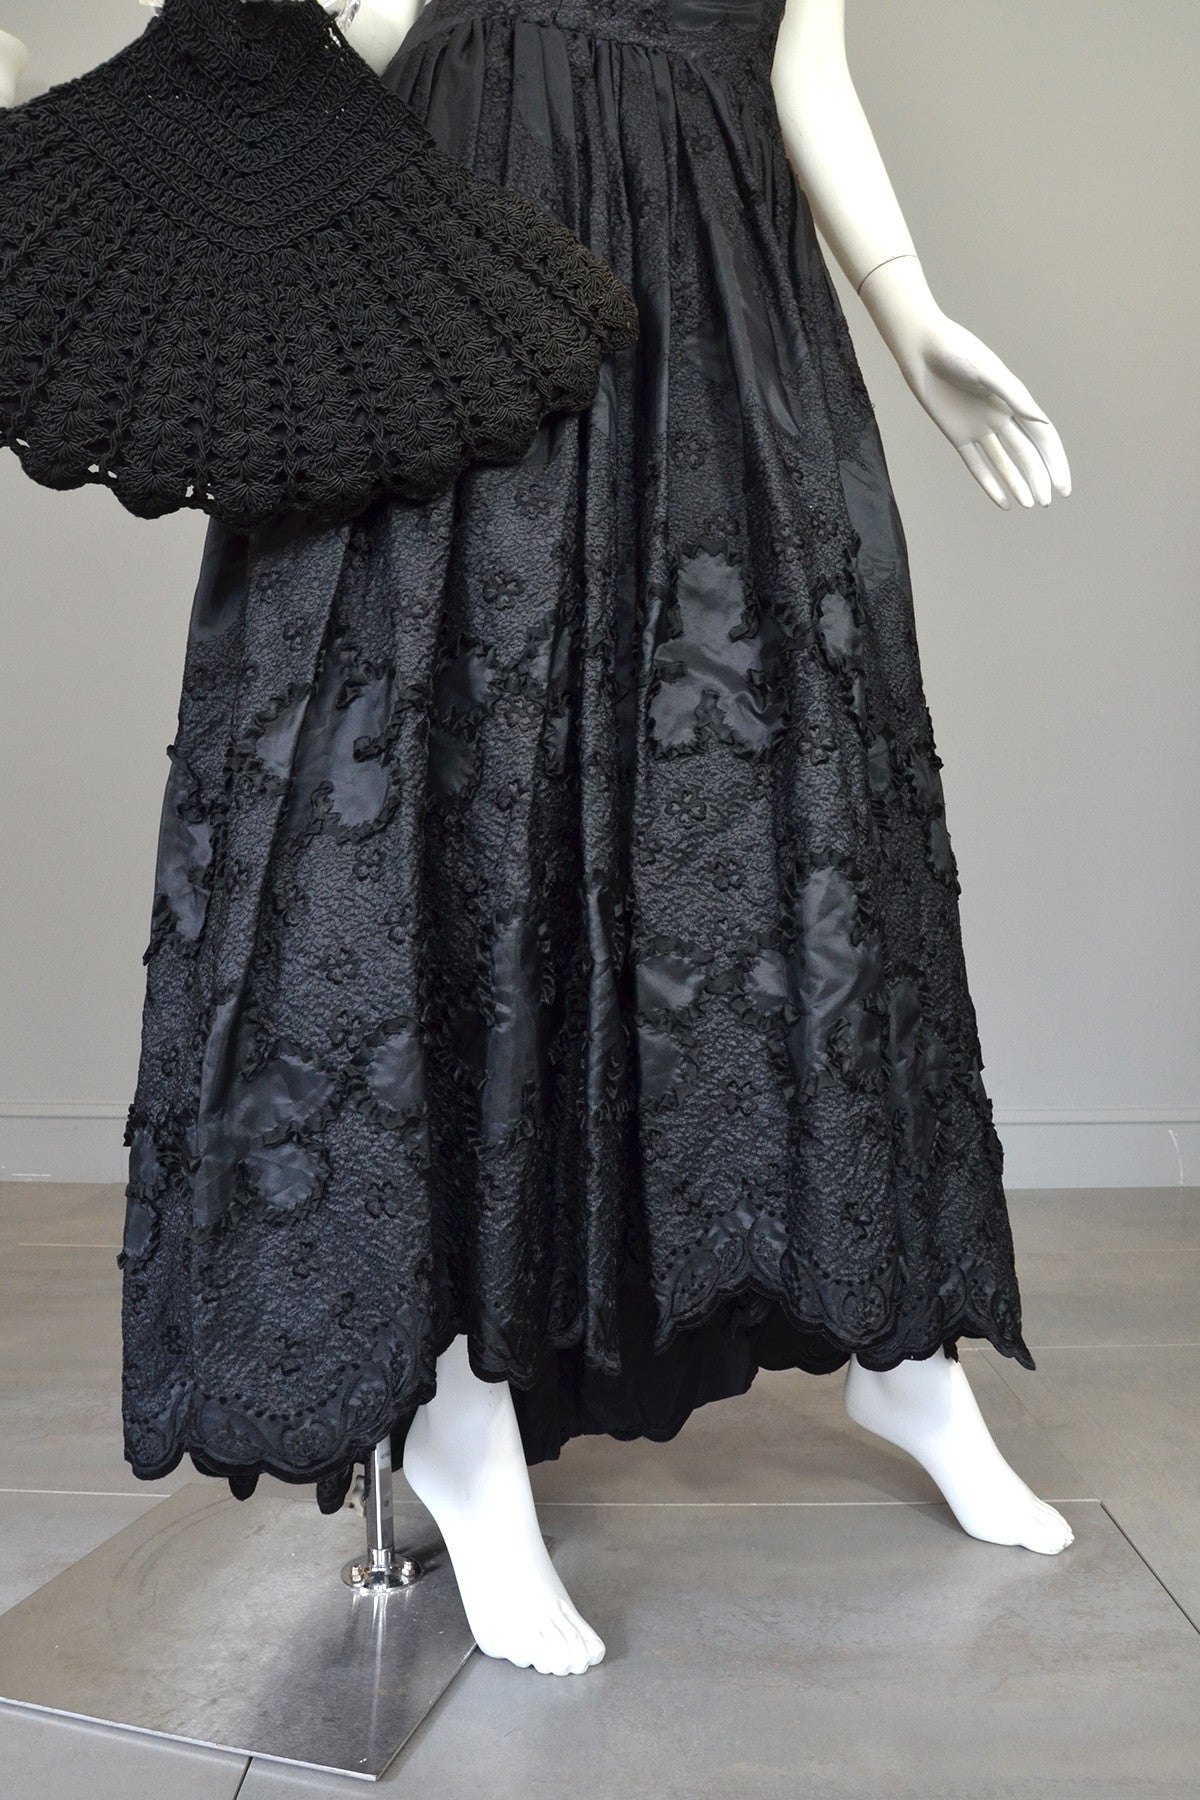 1970s 80s Black Embroidered Ruffle Neckline Evening Gown